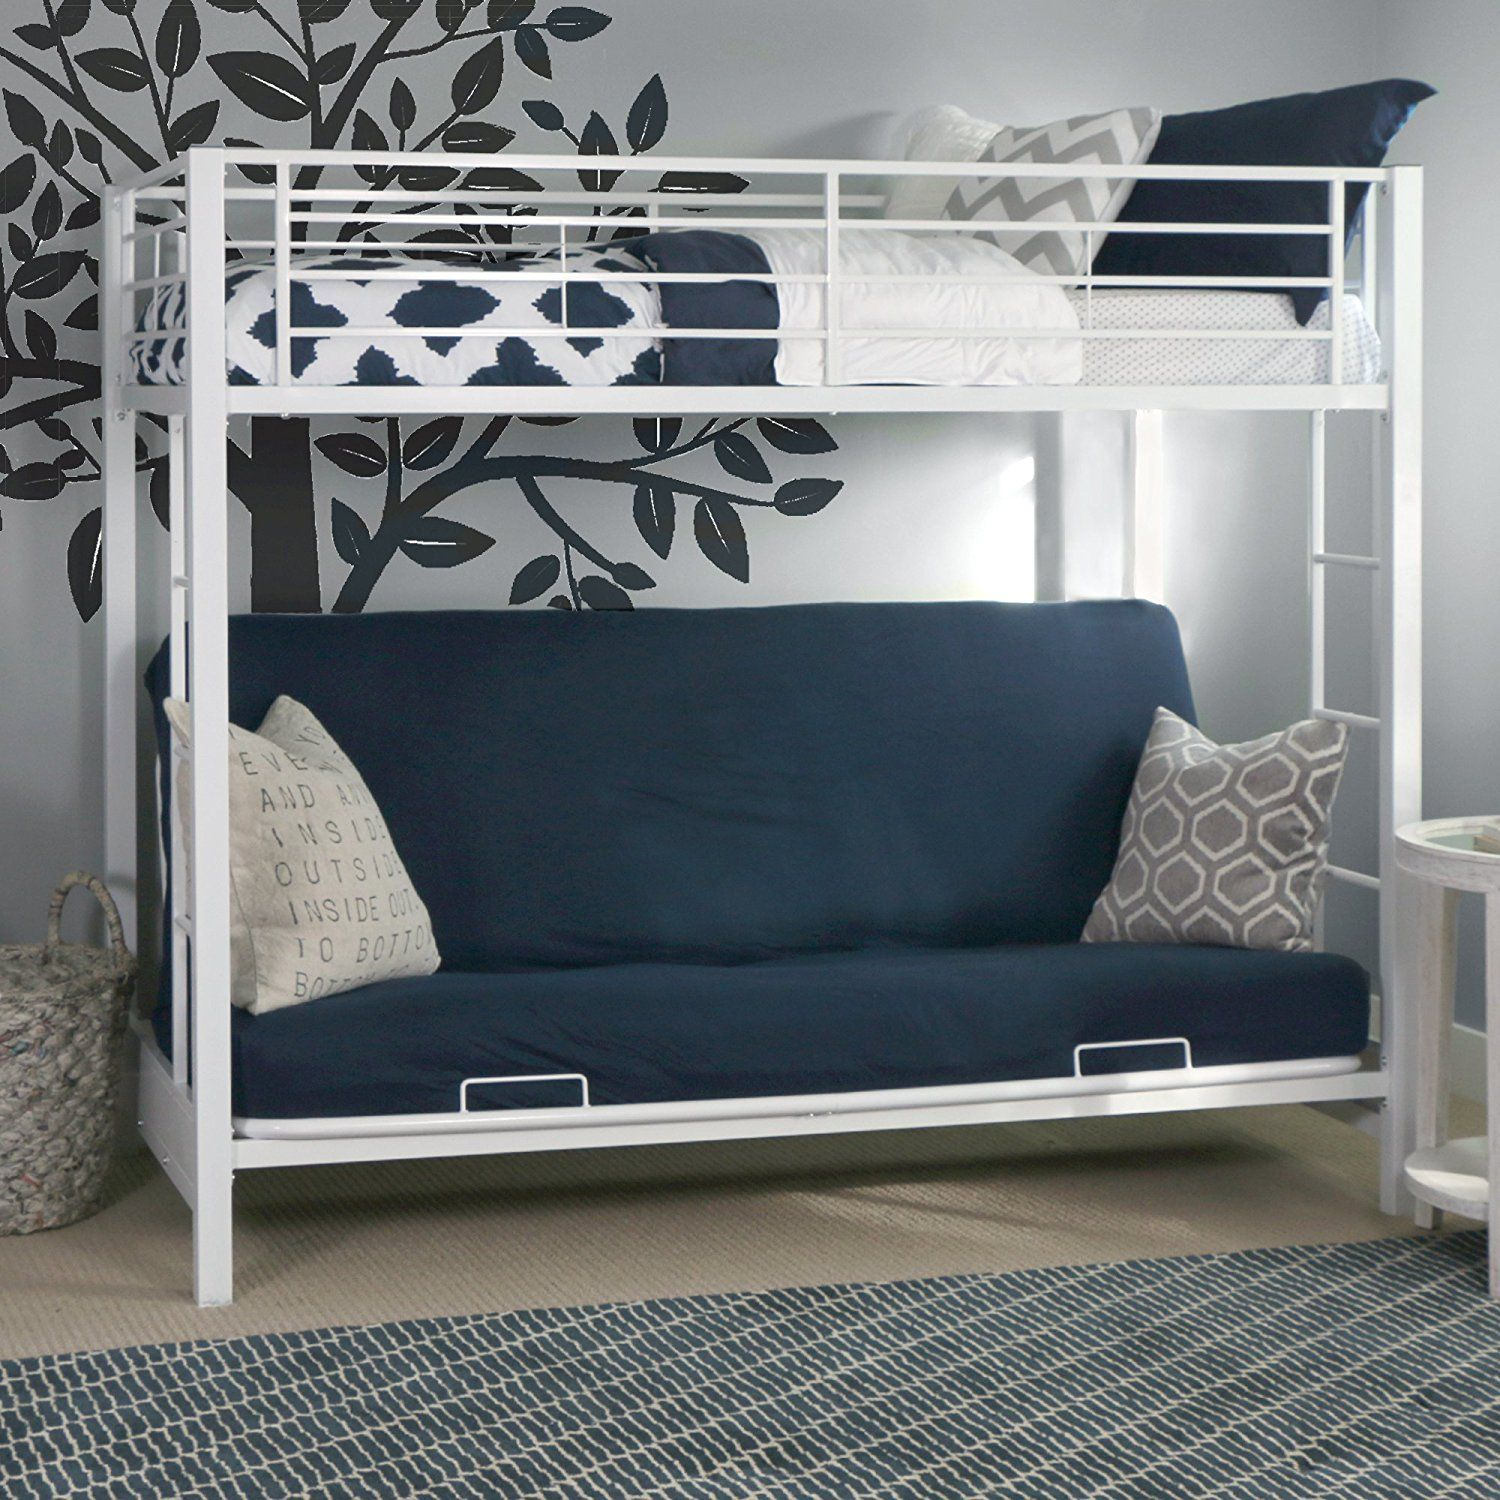 Futon Bunk Bed What Is The Best Interior Paint Check More At Http